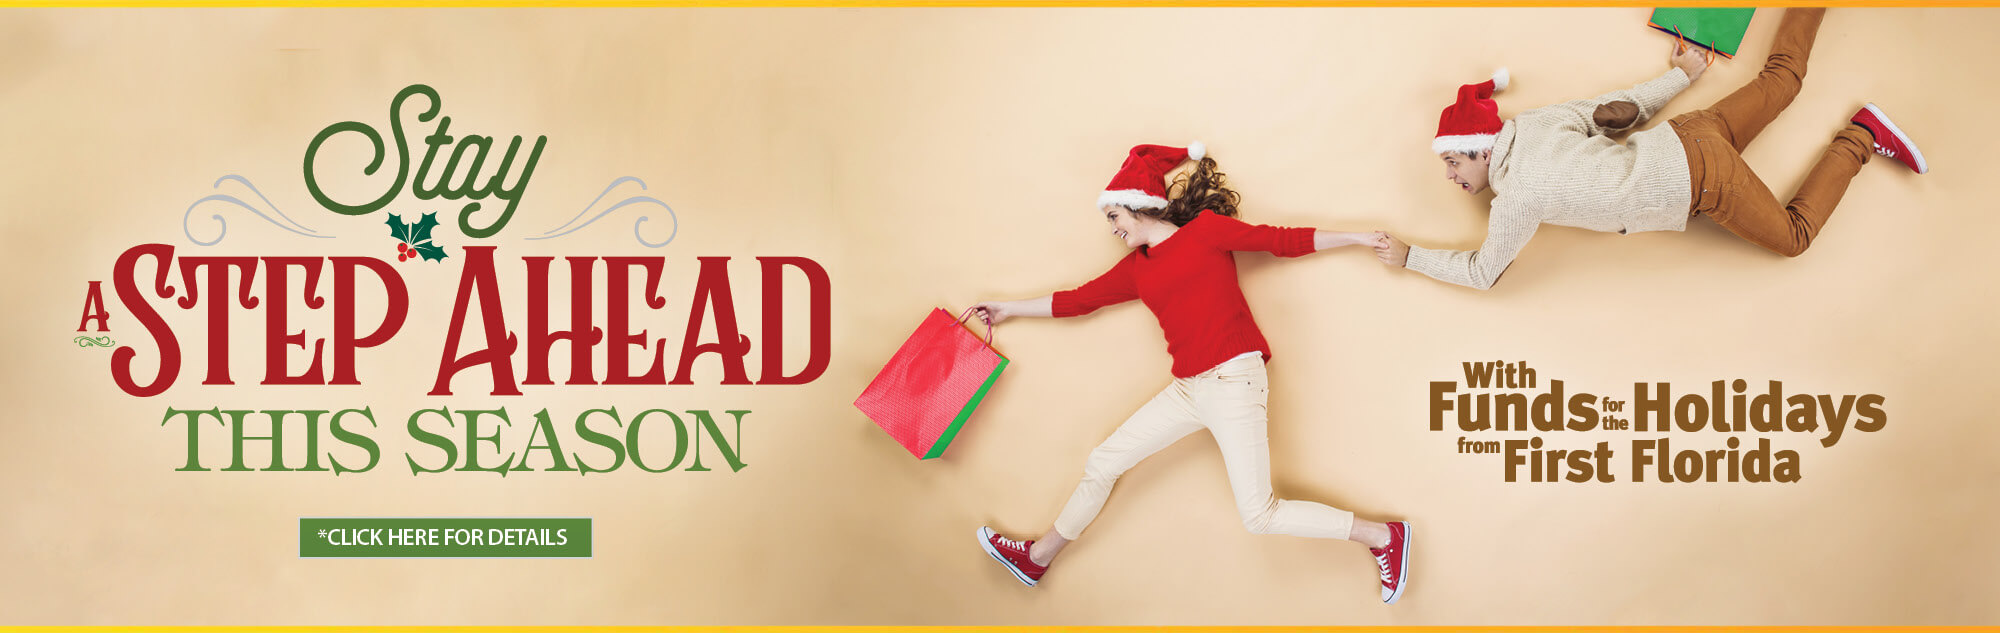 Stay a step ahead this season with funds for the holidays from First Florida. Click here for details.